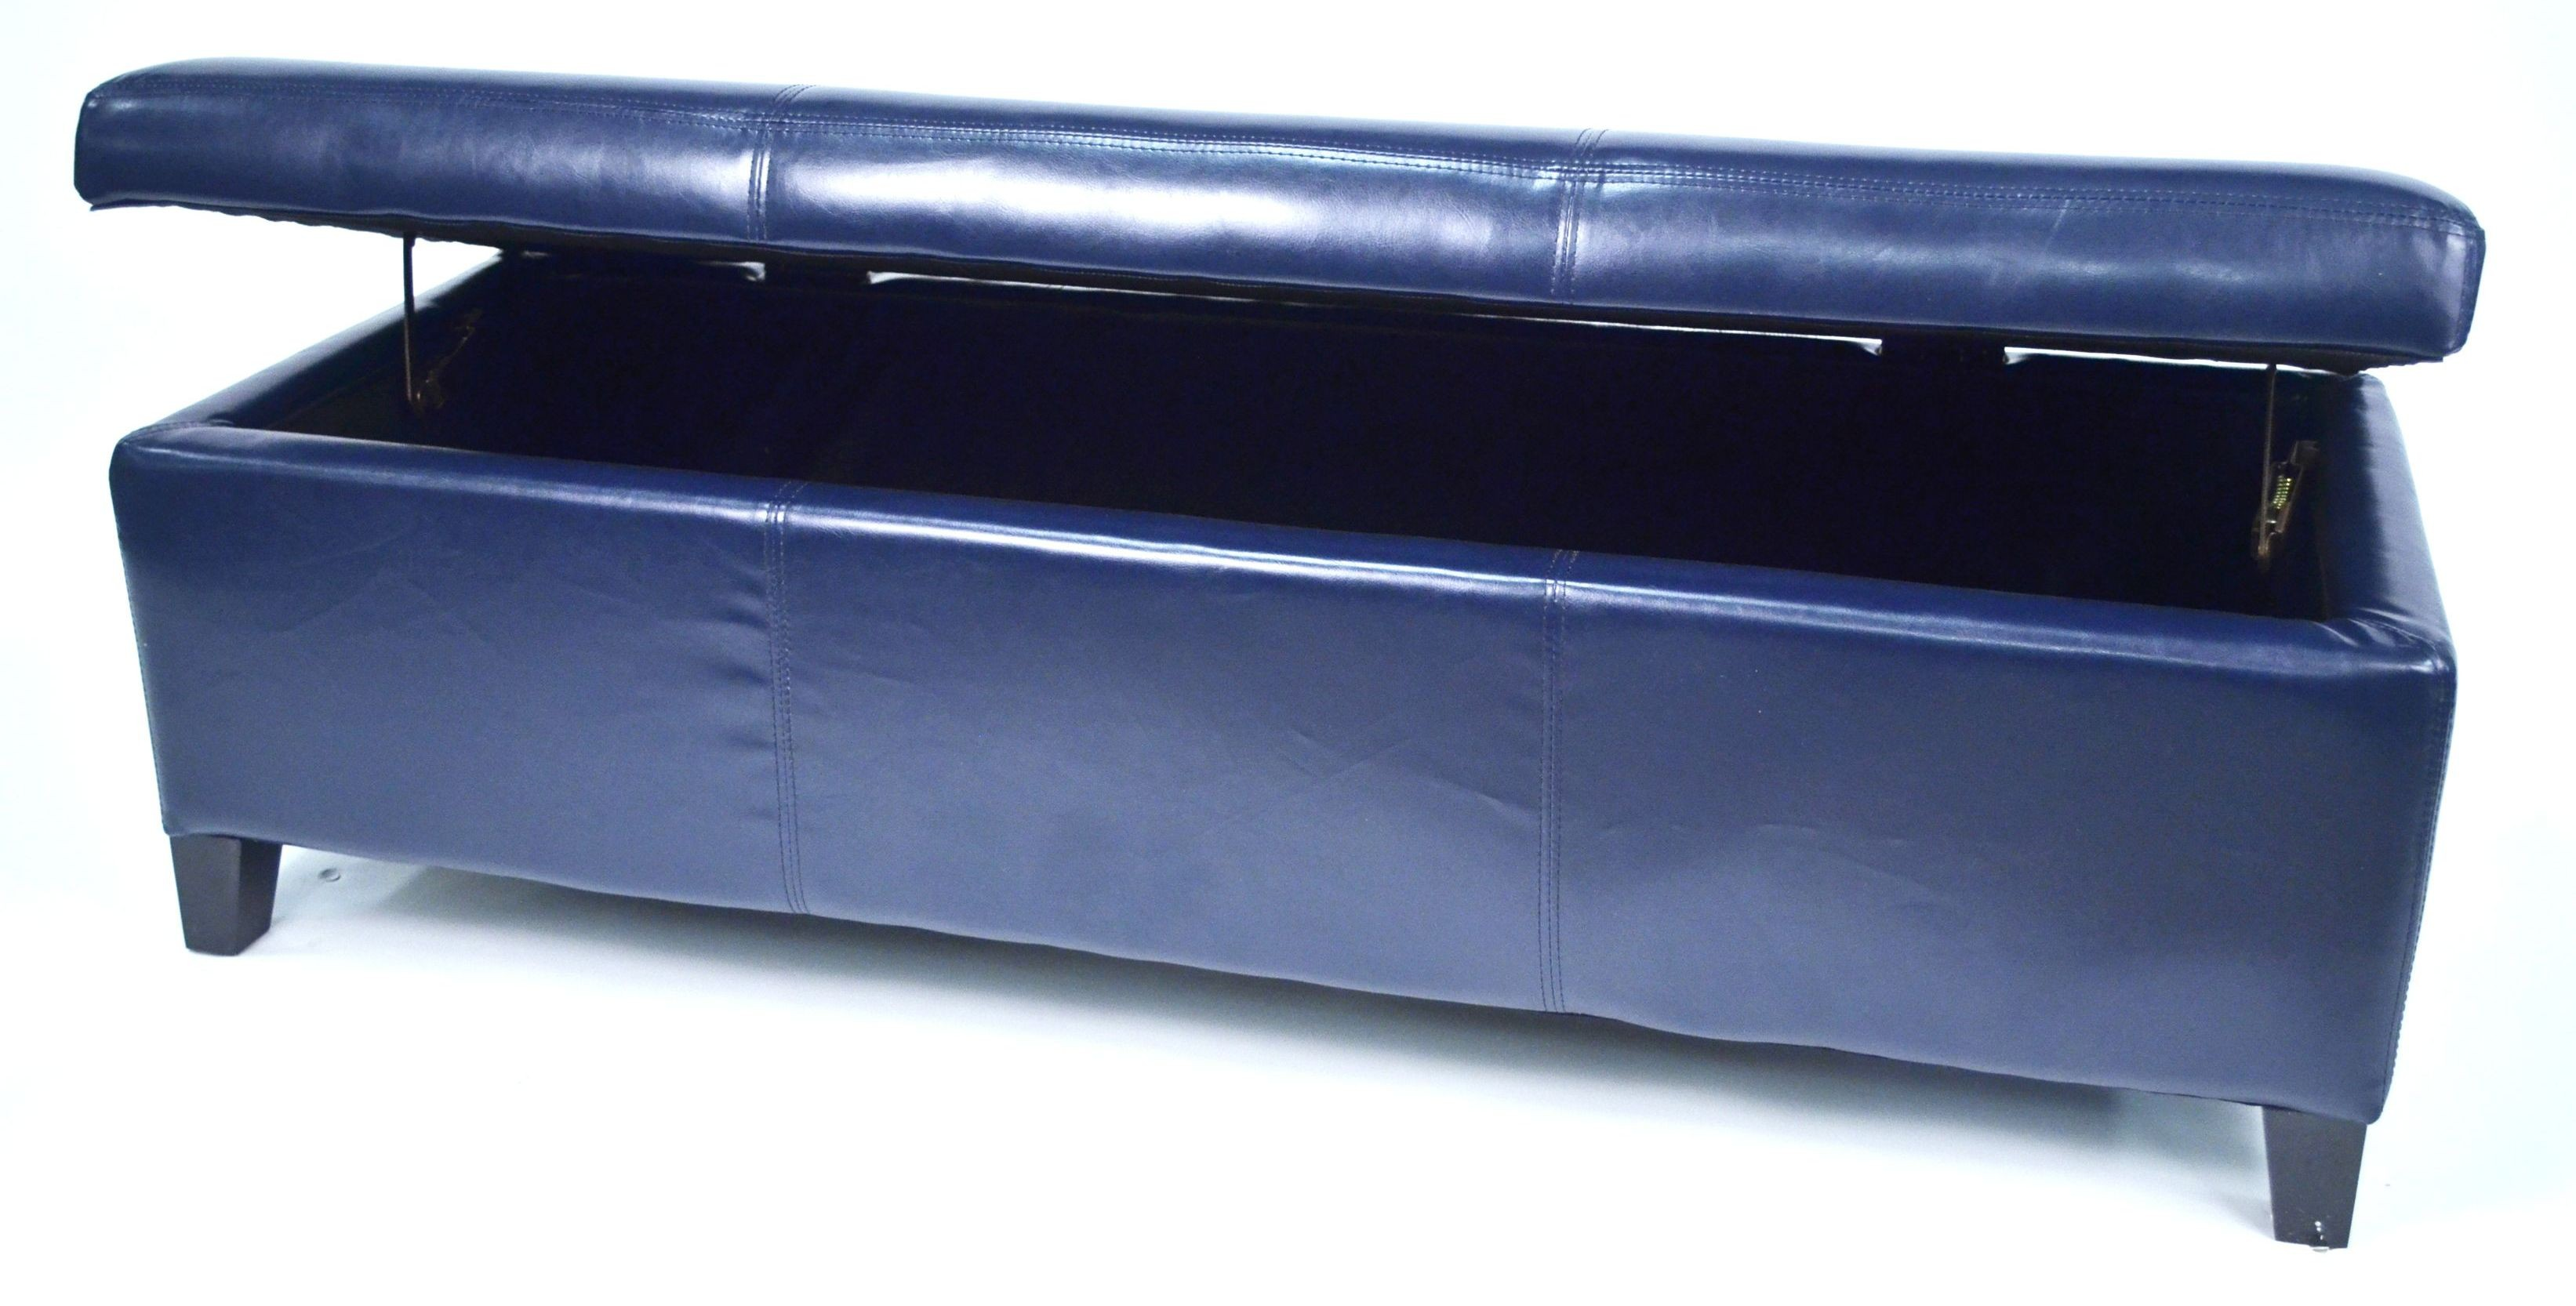 Sharon Dark Blue Faux Leather Storage Bench From Warehouse Of Tiffany Wt W7077 Drk Blue